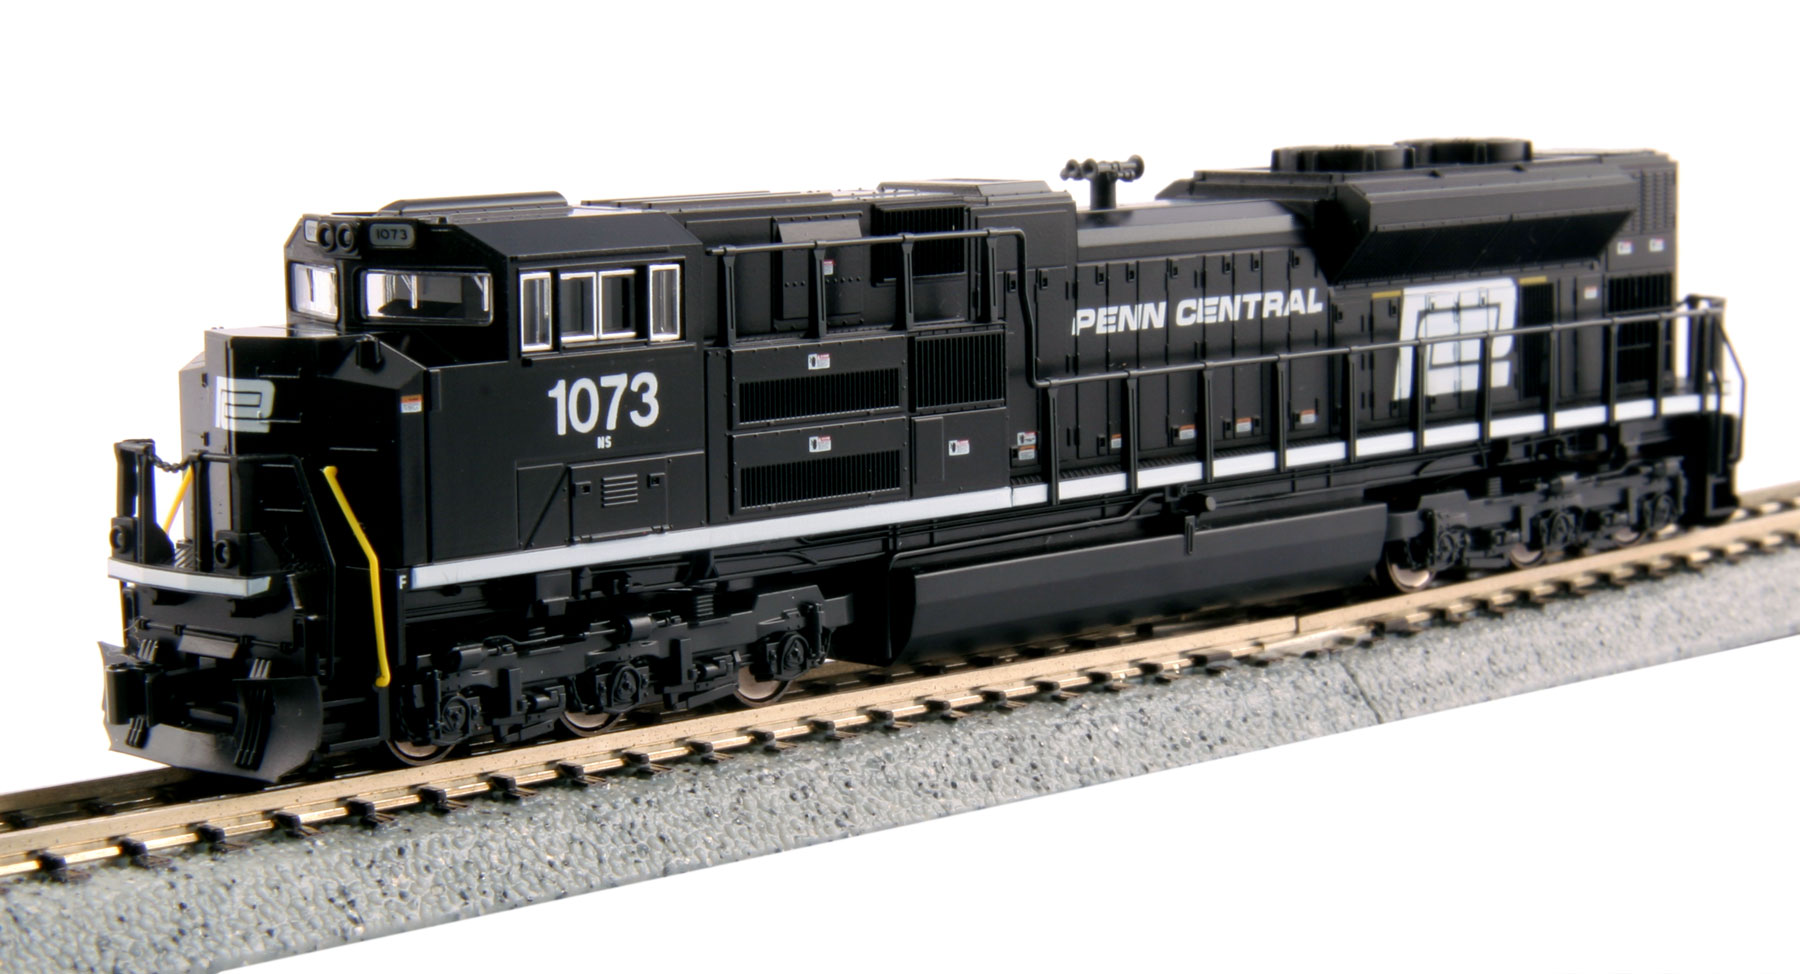 Kato 176-8510 N Norfolk Southern EMD SD70ACe with Norfolk Southern Det This is a Kato USA Inc 1768510 N Scale EMD SD70ACe with Norfolk Southern Details - Standard DC Norfolk Southern #1073 (Penn Central Heritage Scheme, black). The SD70ACe is the latest in the line of EMD's 70 locomotives, an evolution of the SD70MAC, although its radiator design harkens more to that of the SD80/90 body. The SD70ACe has been designed to fit the latest EPA standards and regulations, and sports 4300 horsepower. Heritage units feature unique paint schemes to honor their respective railroads. Models are equipped with prototype accurate bolsterless non-radial HTSC trucks and 5-chime airhorn, powerful 5-pole motor with dual brass flywheels, directional headlight and illuminated, preprinted numberboards plus illuminated ditch lights, Kato magnetic knuckle couplers and DCC-friendly mechanism for easy drop-in decoder installation.Condition: Factory New (C-9All original; unused; factory rubs and evidence of handling, shipping and factory test run.Standards for all toy train related accessory items apply to the visual appearance of the item and do not consider the operating functionality of the equipment.Condition and Grading Standards are subjective, at best, and are intended to act as a guide. )Operational Status: FunctionalThis item is brand new from the factory.Original Box: Yes (P-9May have store stamps and price tags. Has inner liners.)Manufacturer: KatoModel Number: 176-8510MSRP: $135.00Scale/Era: N ScaleModel Type: Diesel LocoAvailability: Ships in 1 Business Day!The Trainz SKU for this item is P11971246. Track: 11971246 - No Location Assigned - 001 - TrainzAuctionGroup00UNK - TDIDUNK